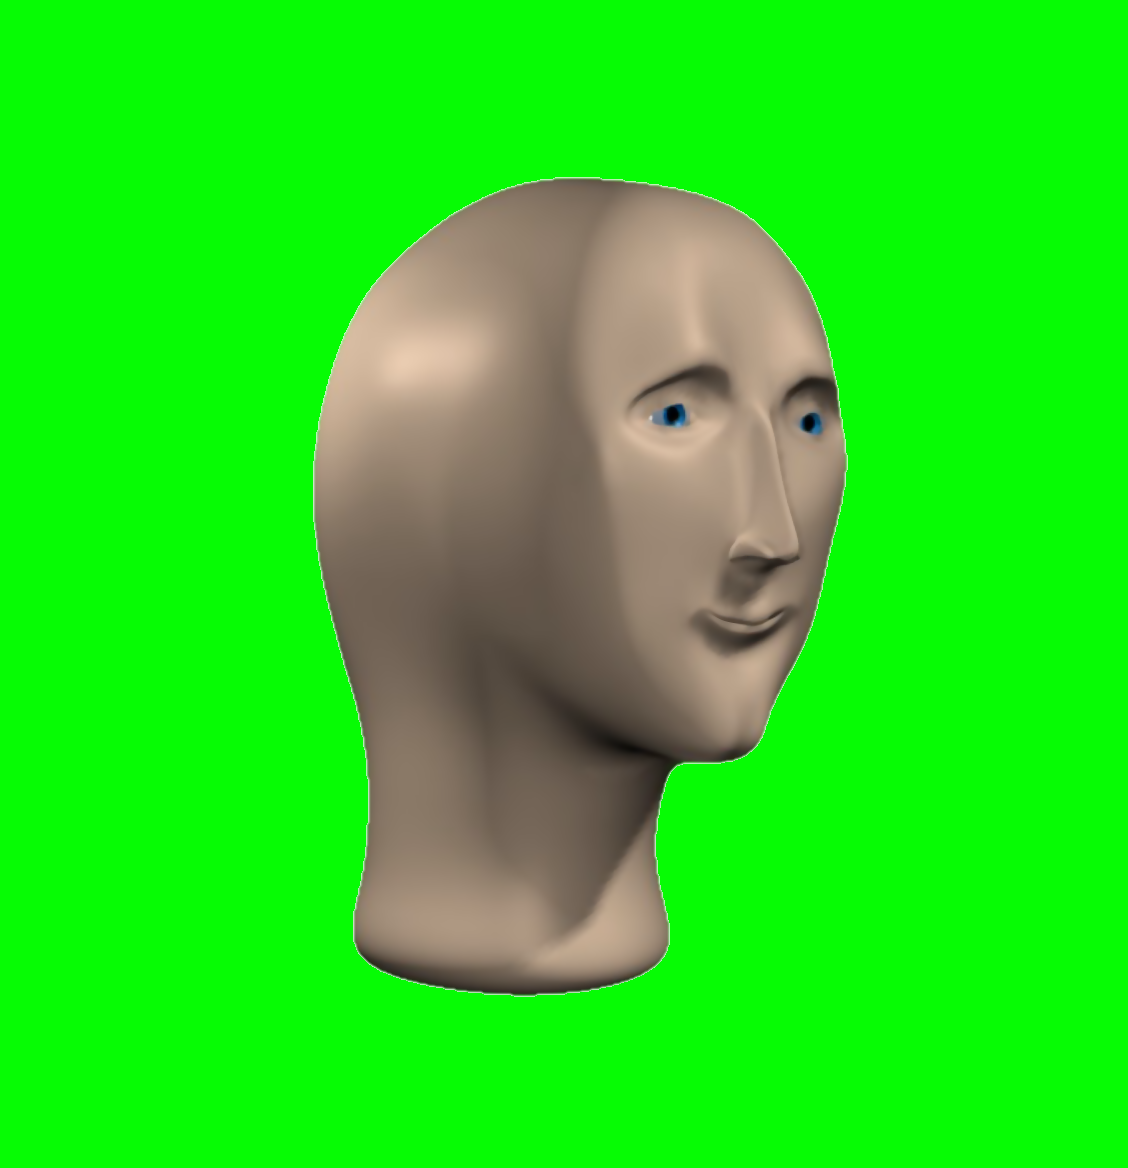 Meme Man Png (103+ images in Collection) Page 2.